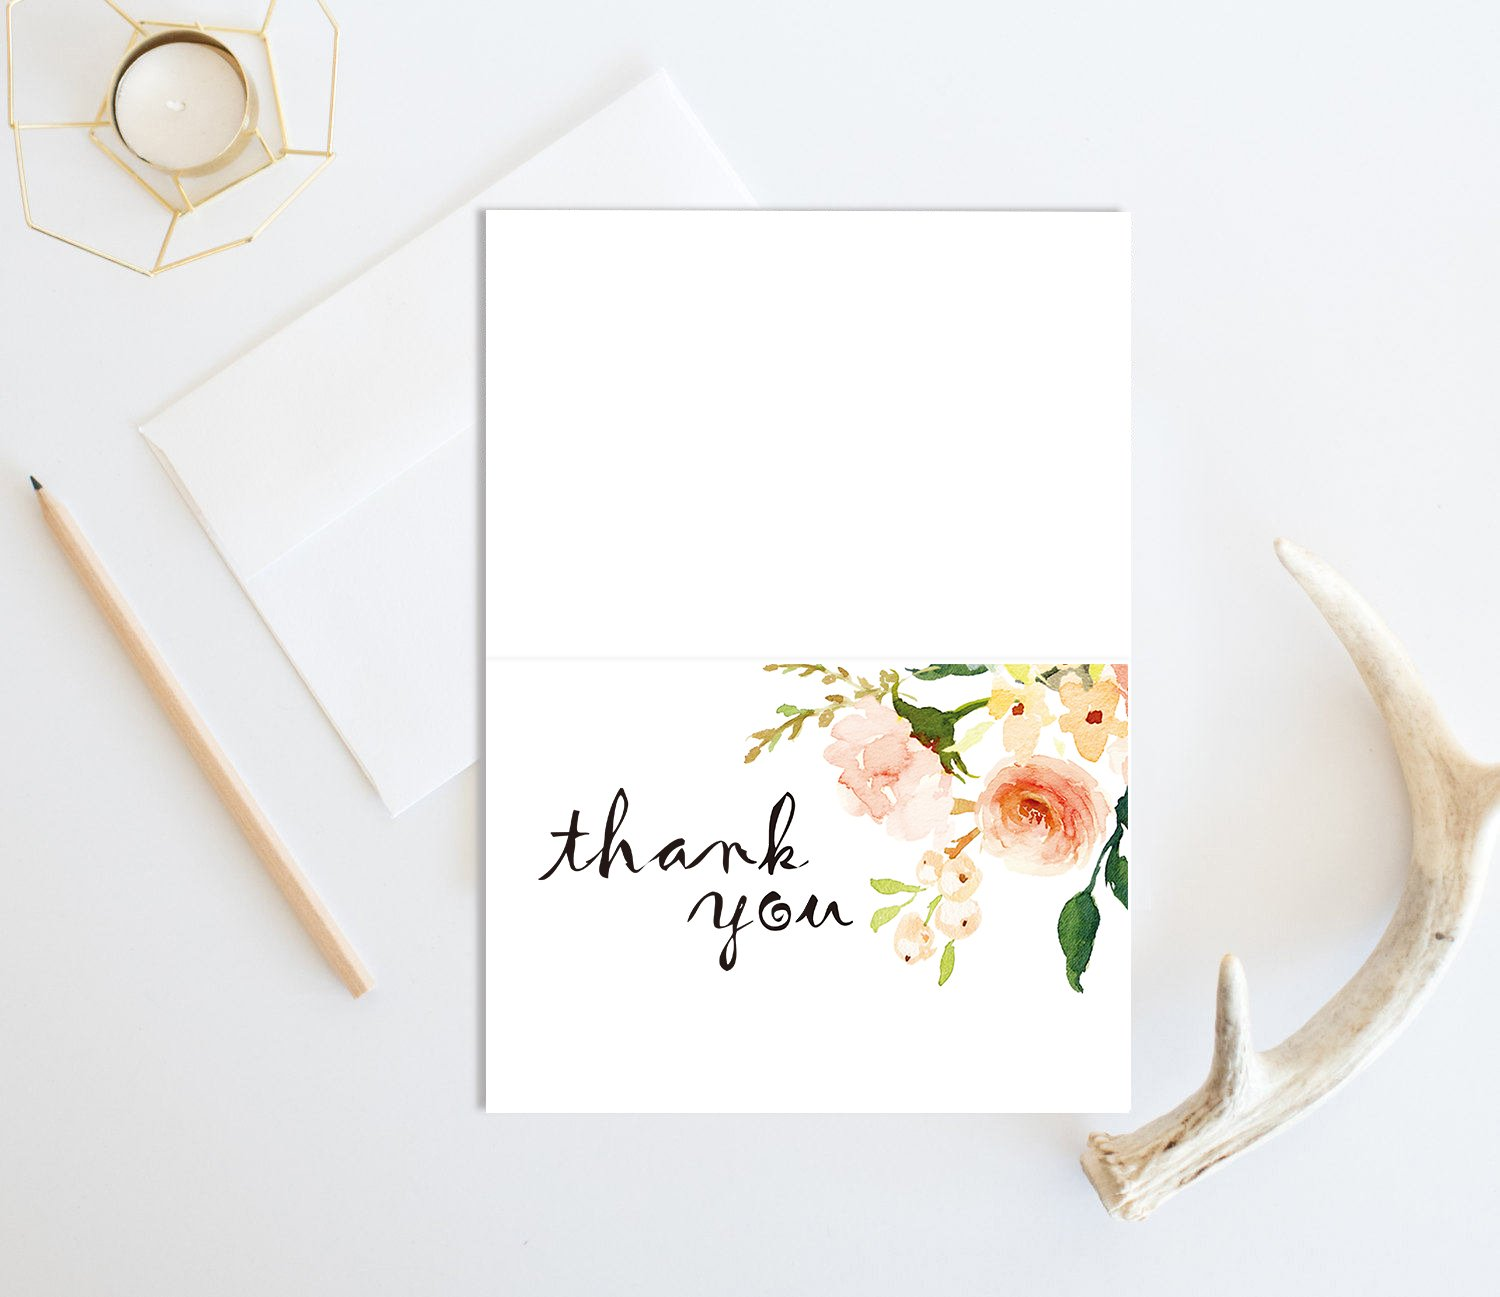 Bridal Shower Chic Greeting Cards 25 Bulk Pack Pink Floral Thank You Cards with Envelopes Meet Wedding 4 x 6 Boho Flower Thank You Notes Girl Baby Shower More Occasion Blank Inside